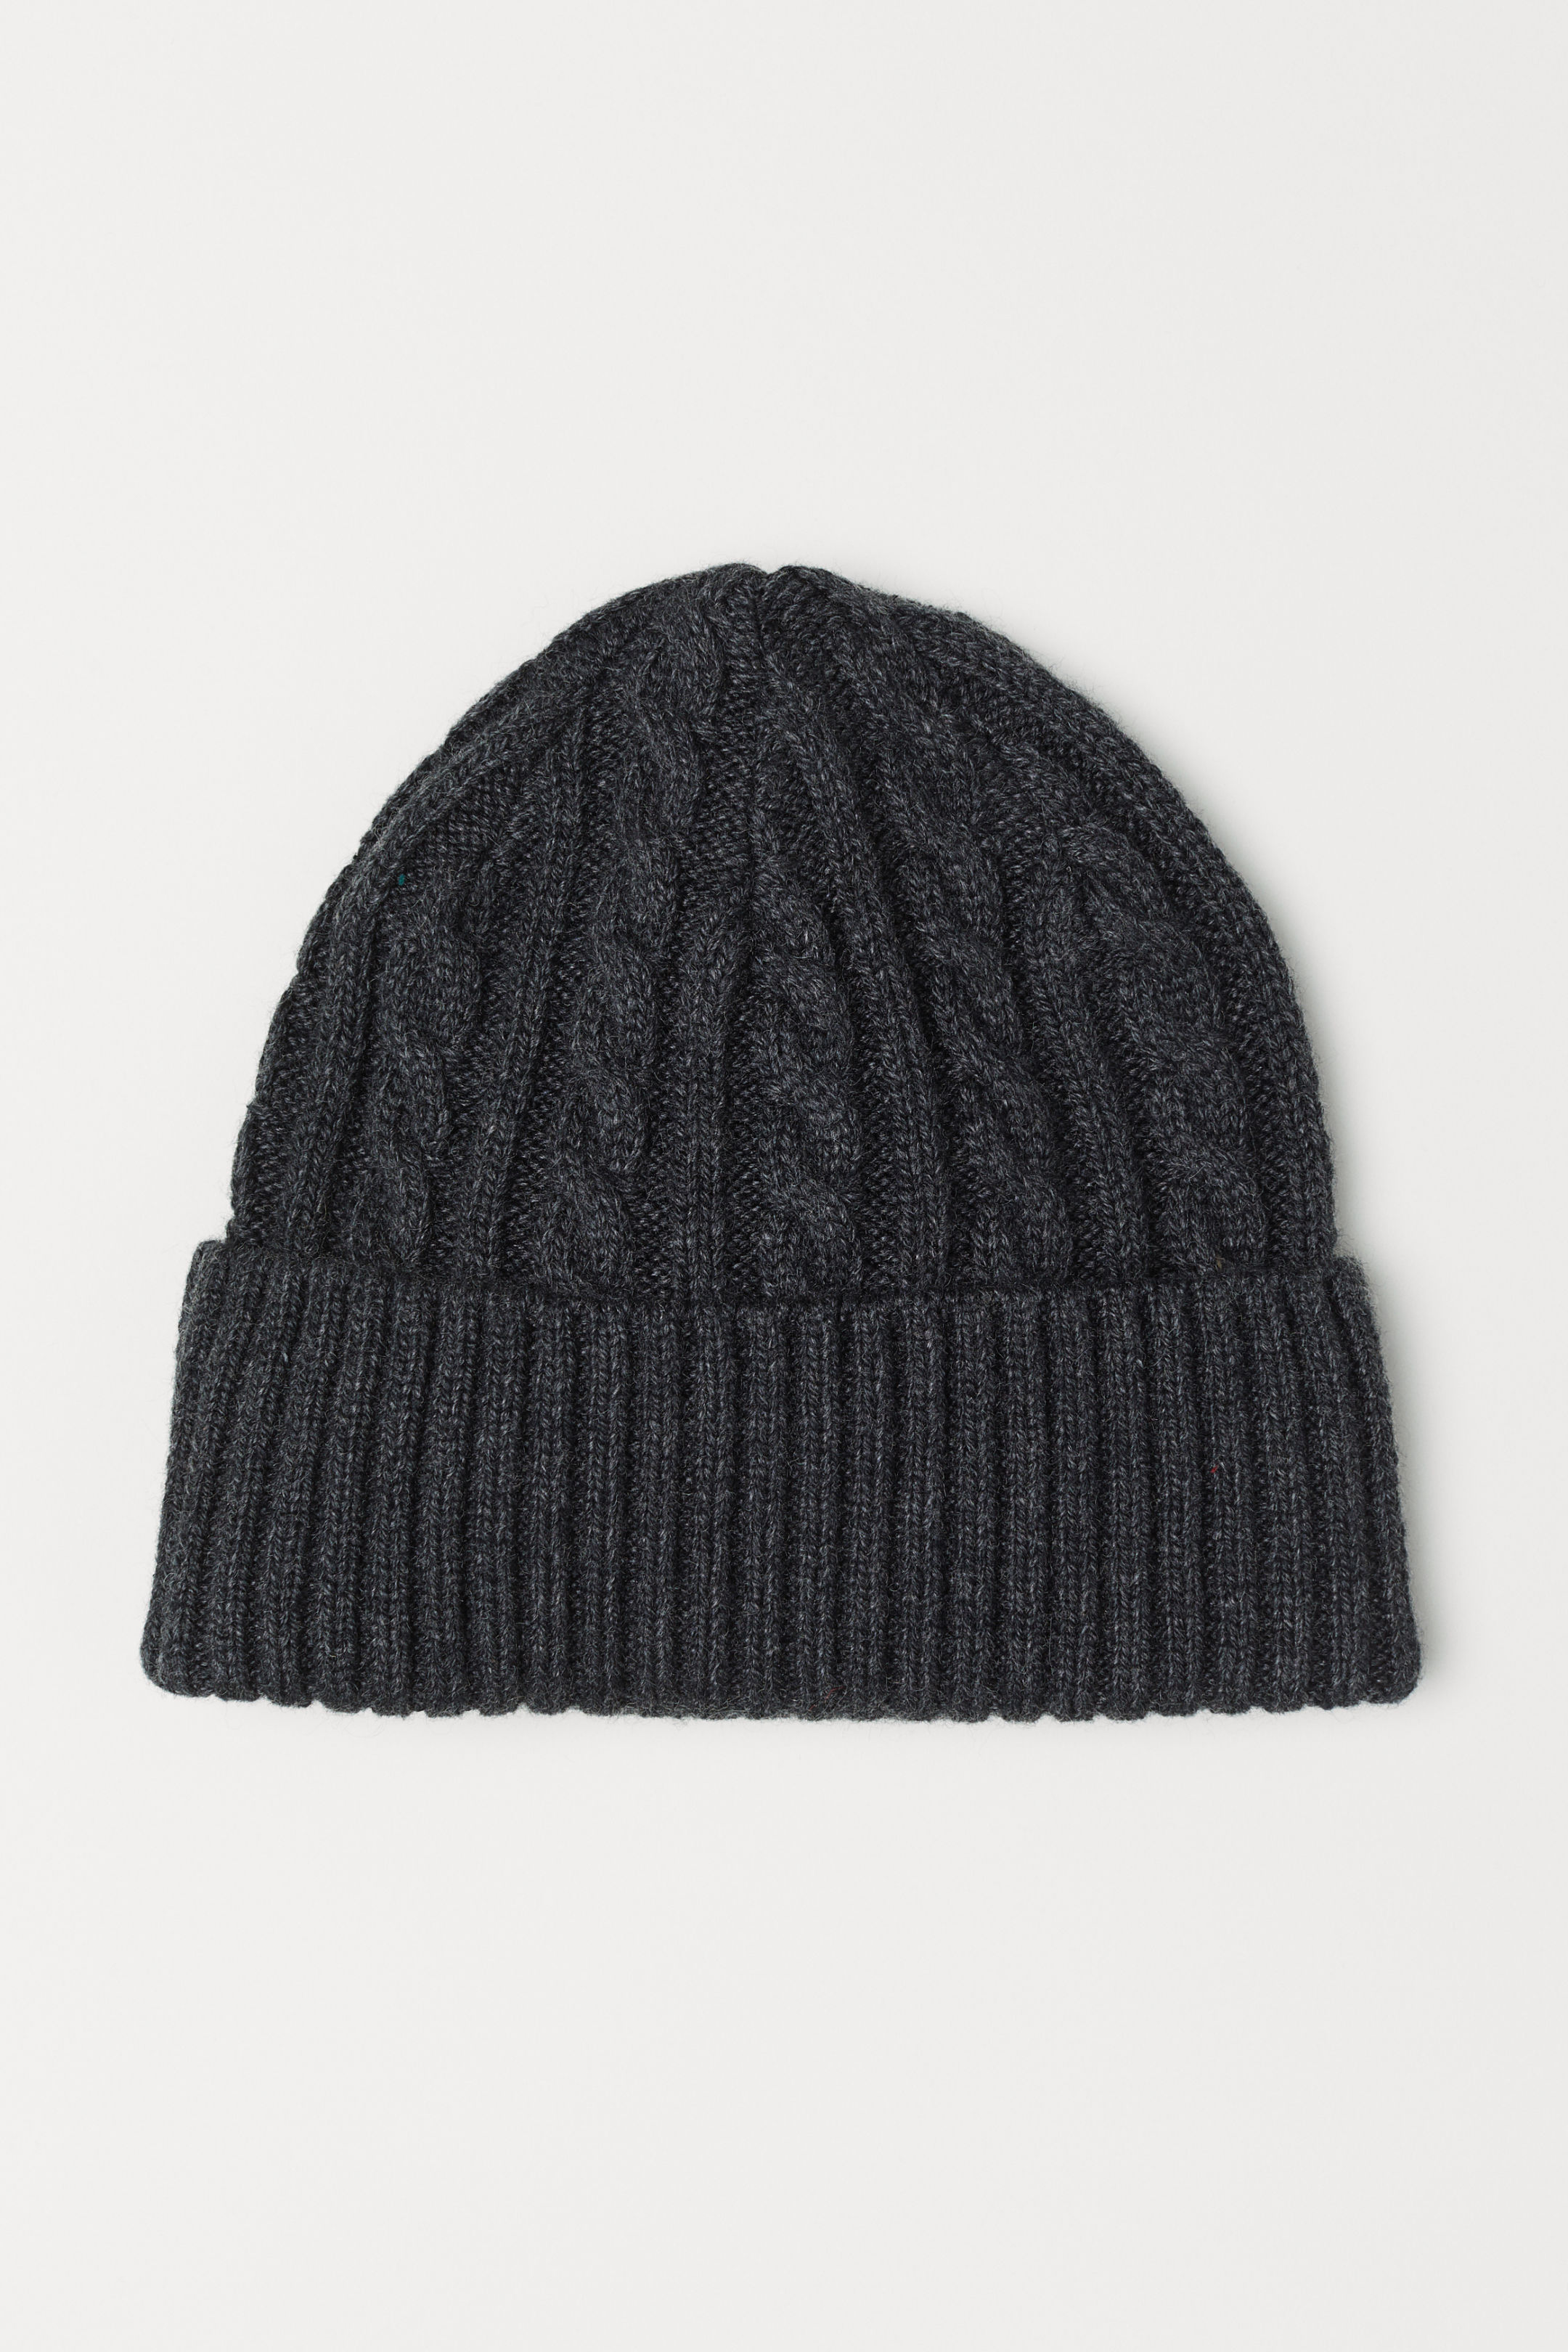 Cool affordable gifts under $15: Grey cable knit hat